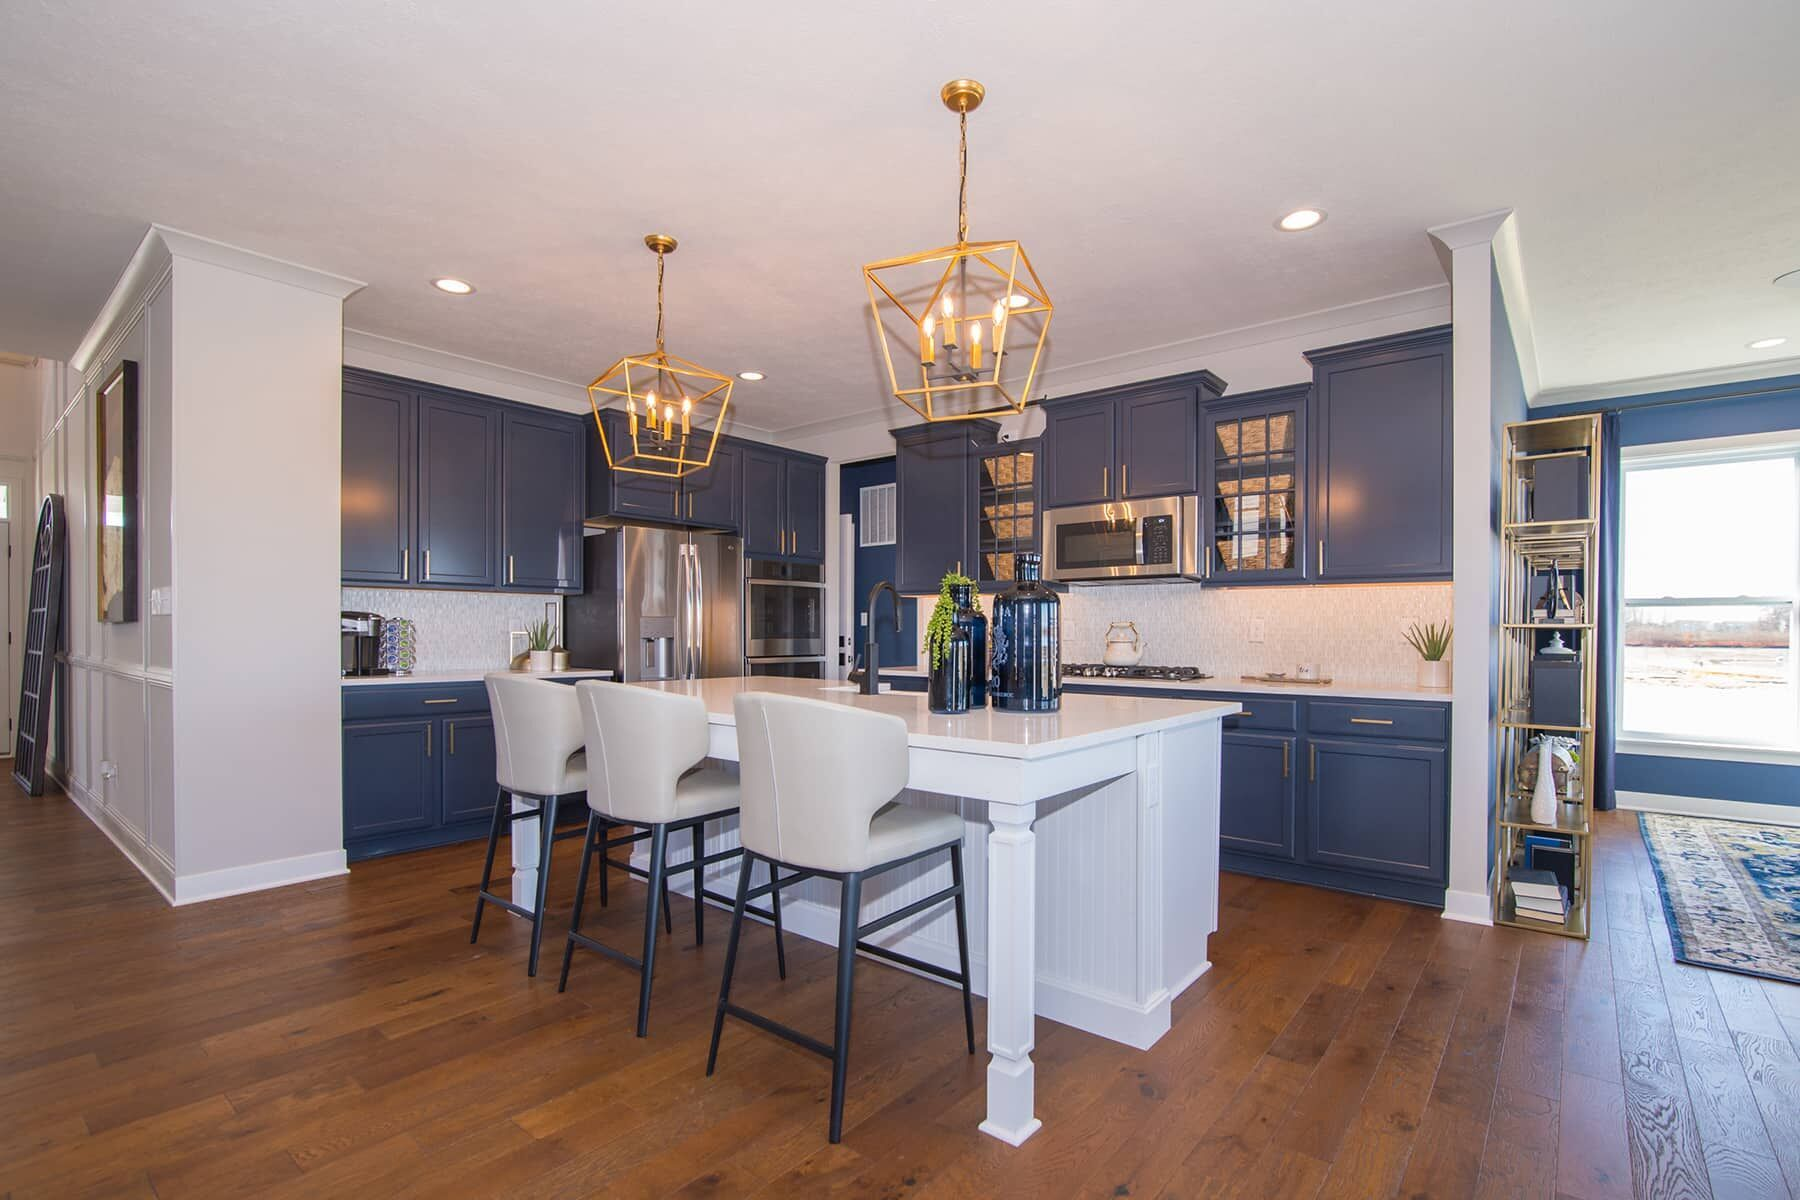 Kitchen featured in the Glendale Basement By M/I Homes in Indianapolis, IN